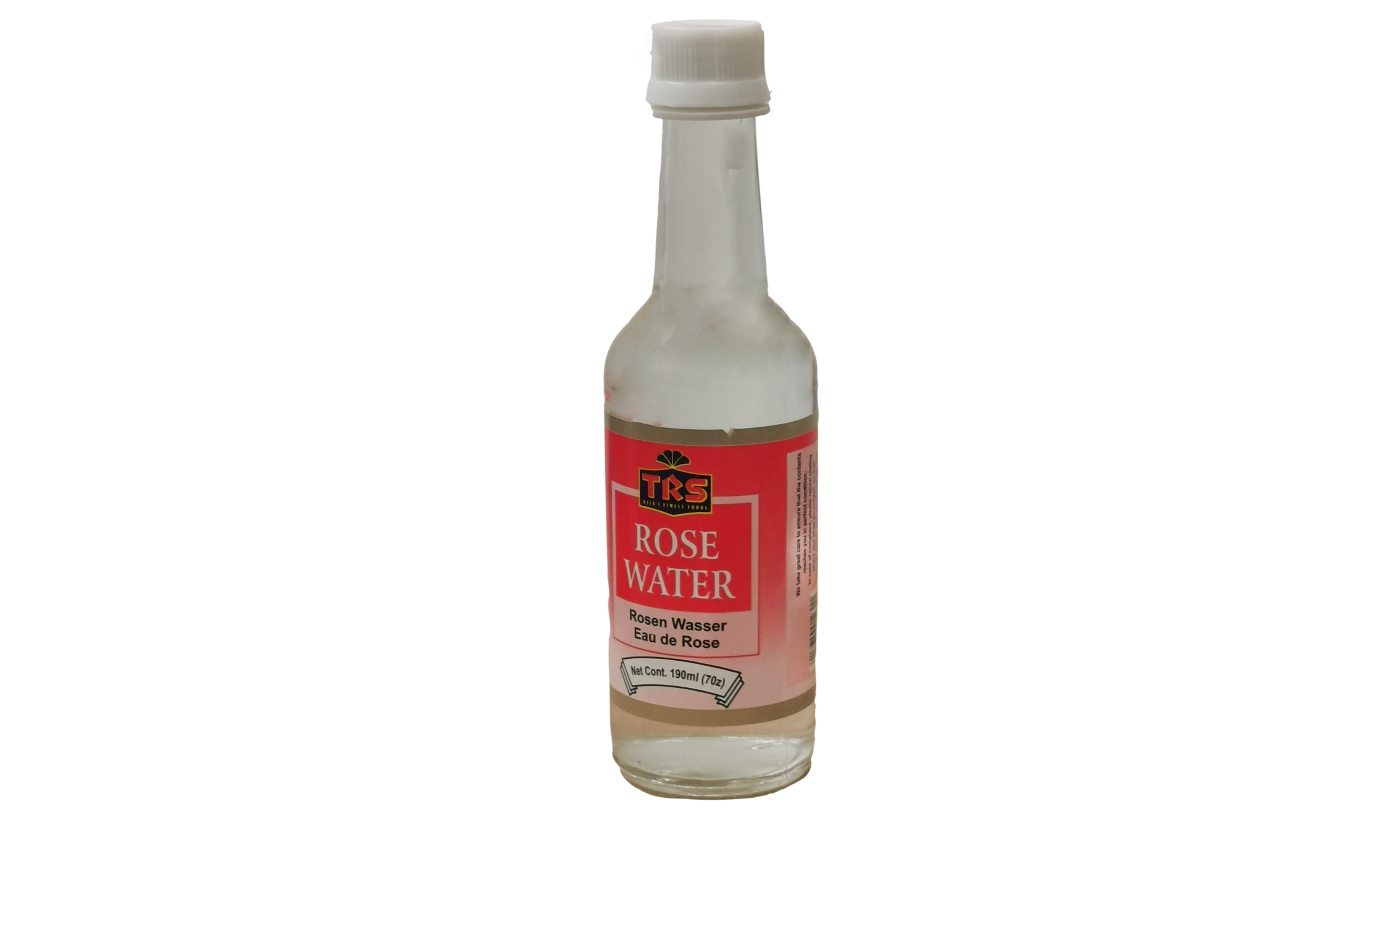 TRS Rose Water